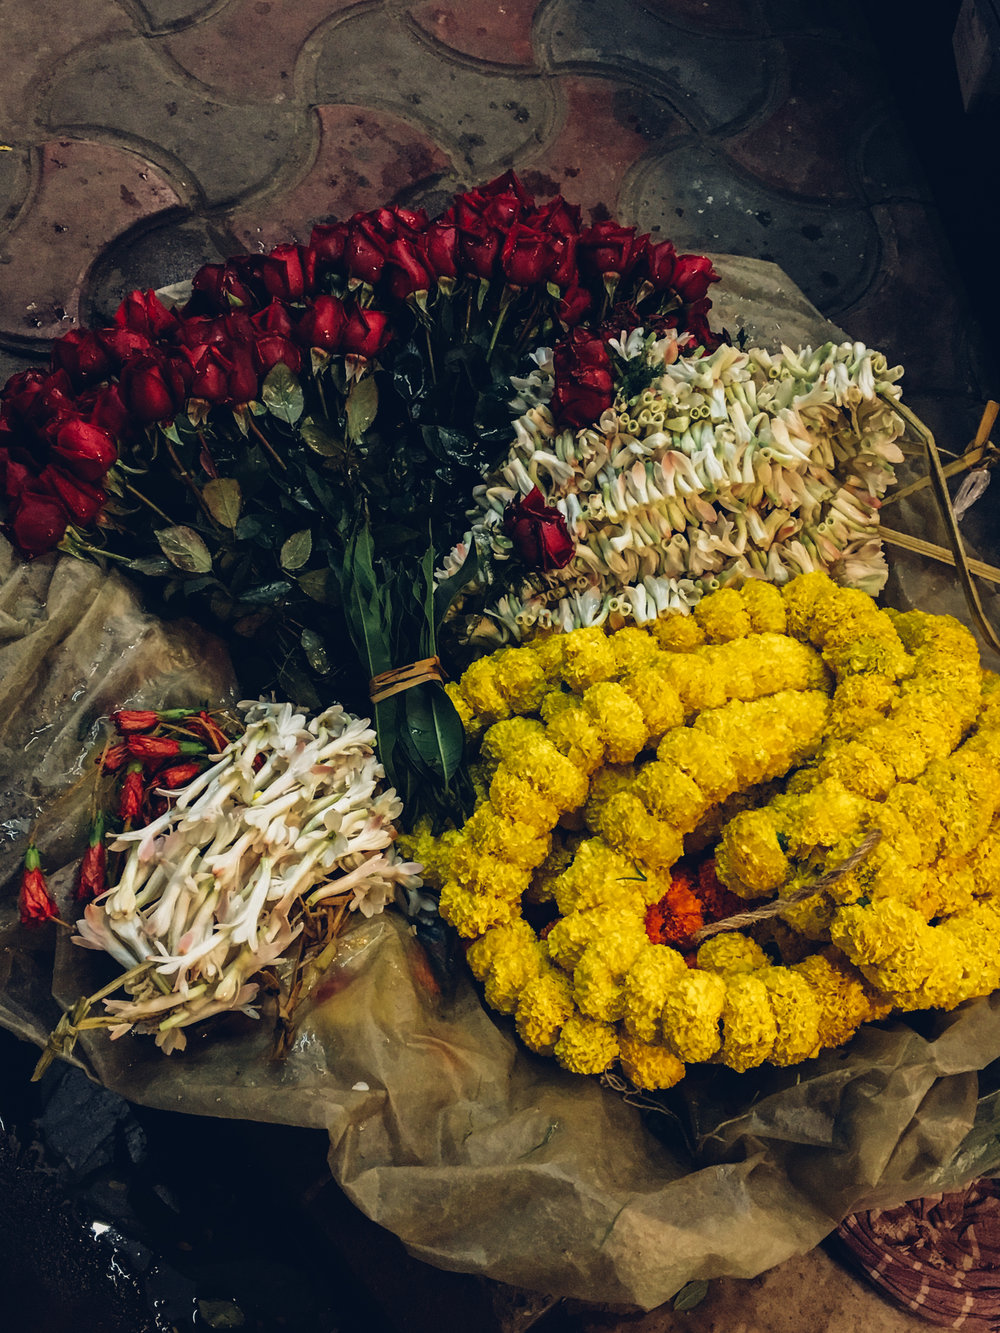 A flower seller's goods at Garihat Market.